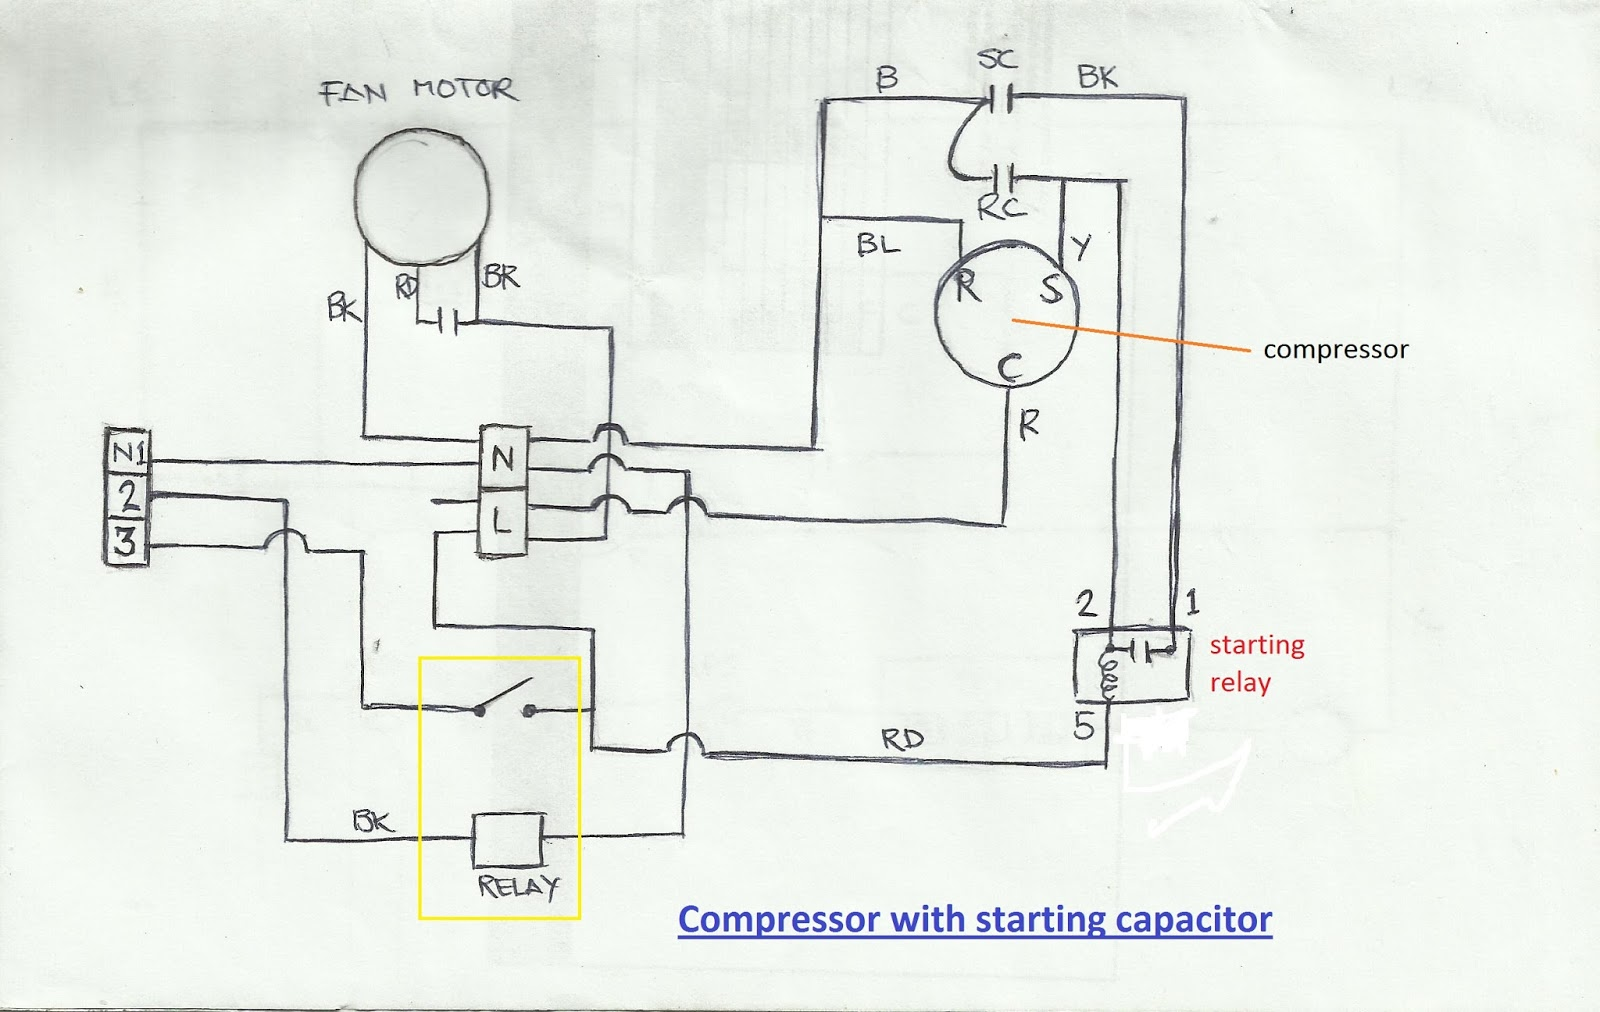 hvac condenser wiring schematic refrigeration and air conditioning repair: july 2013